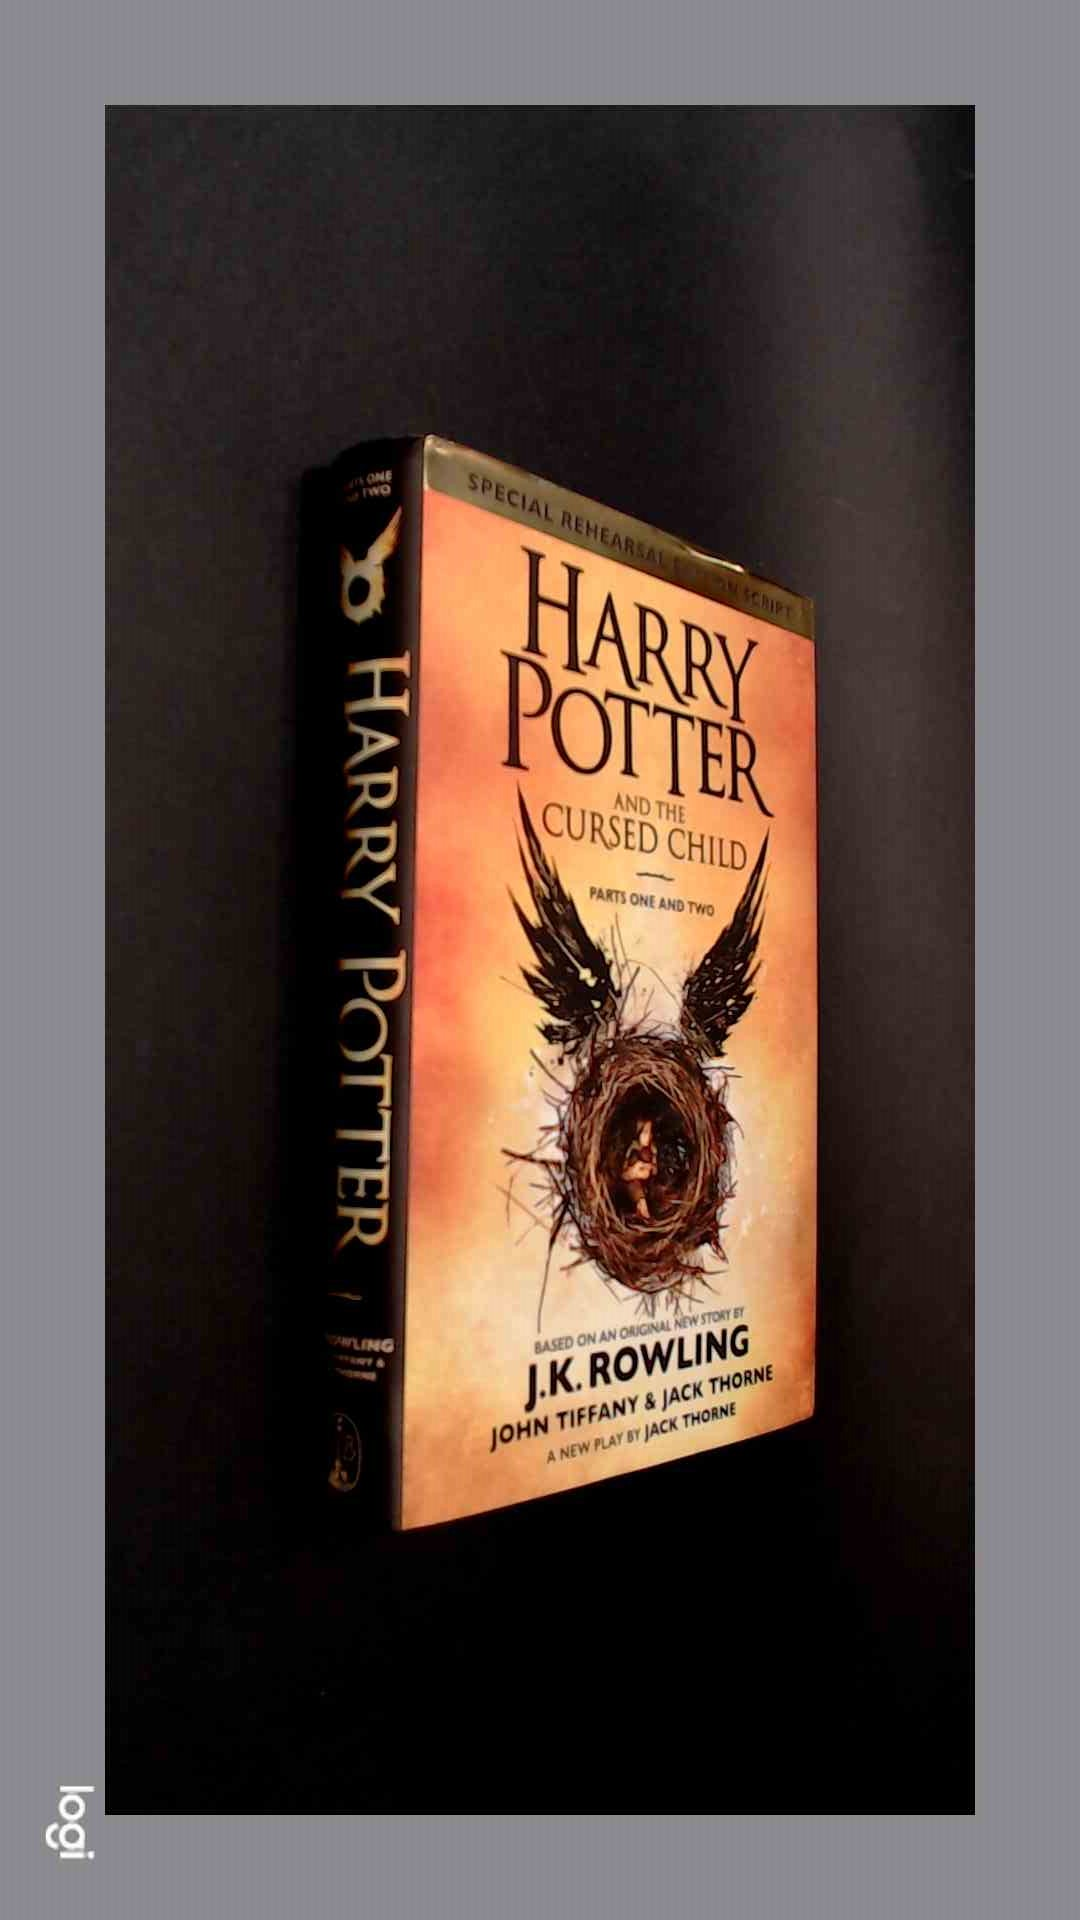 ROWLING, J. K. - Harry Potter and the cursed child